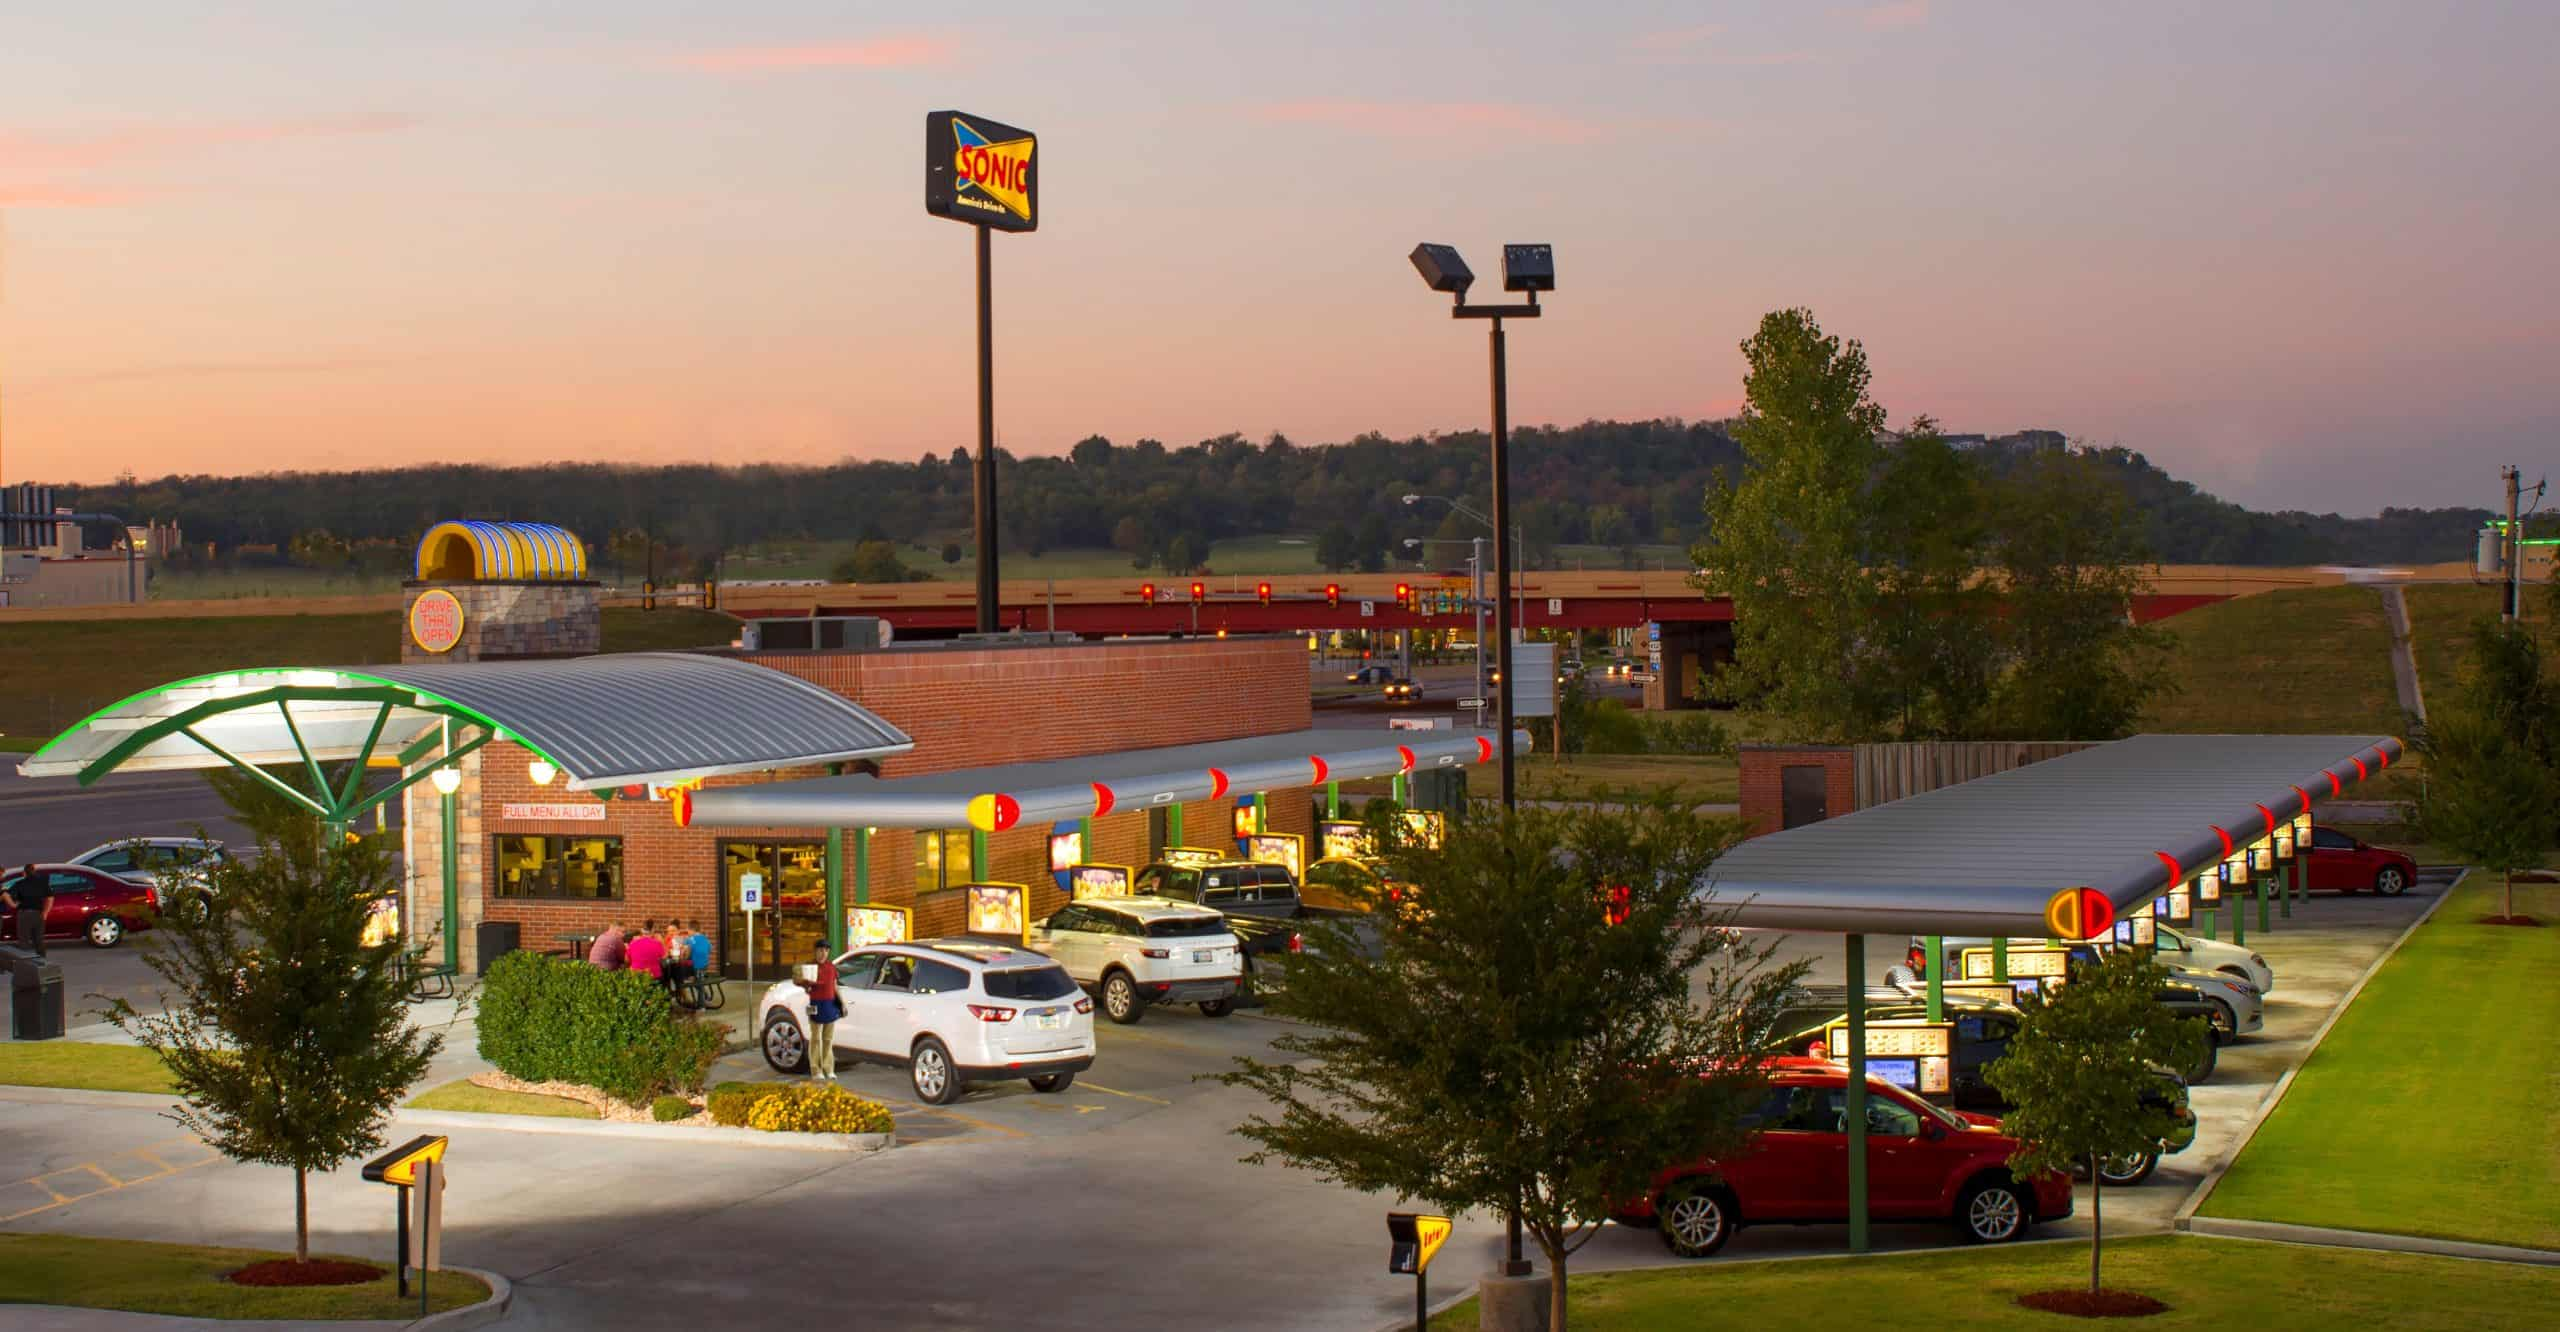 Best deals at Sonic - photo of Sonic Drive-In with rollerskating waitress and car bays